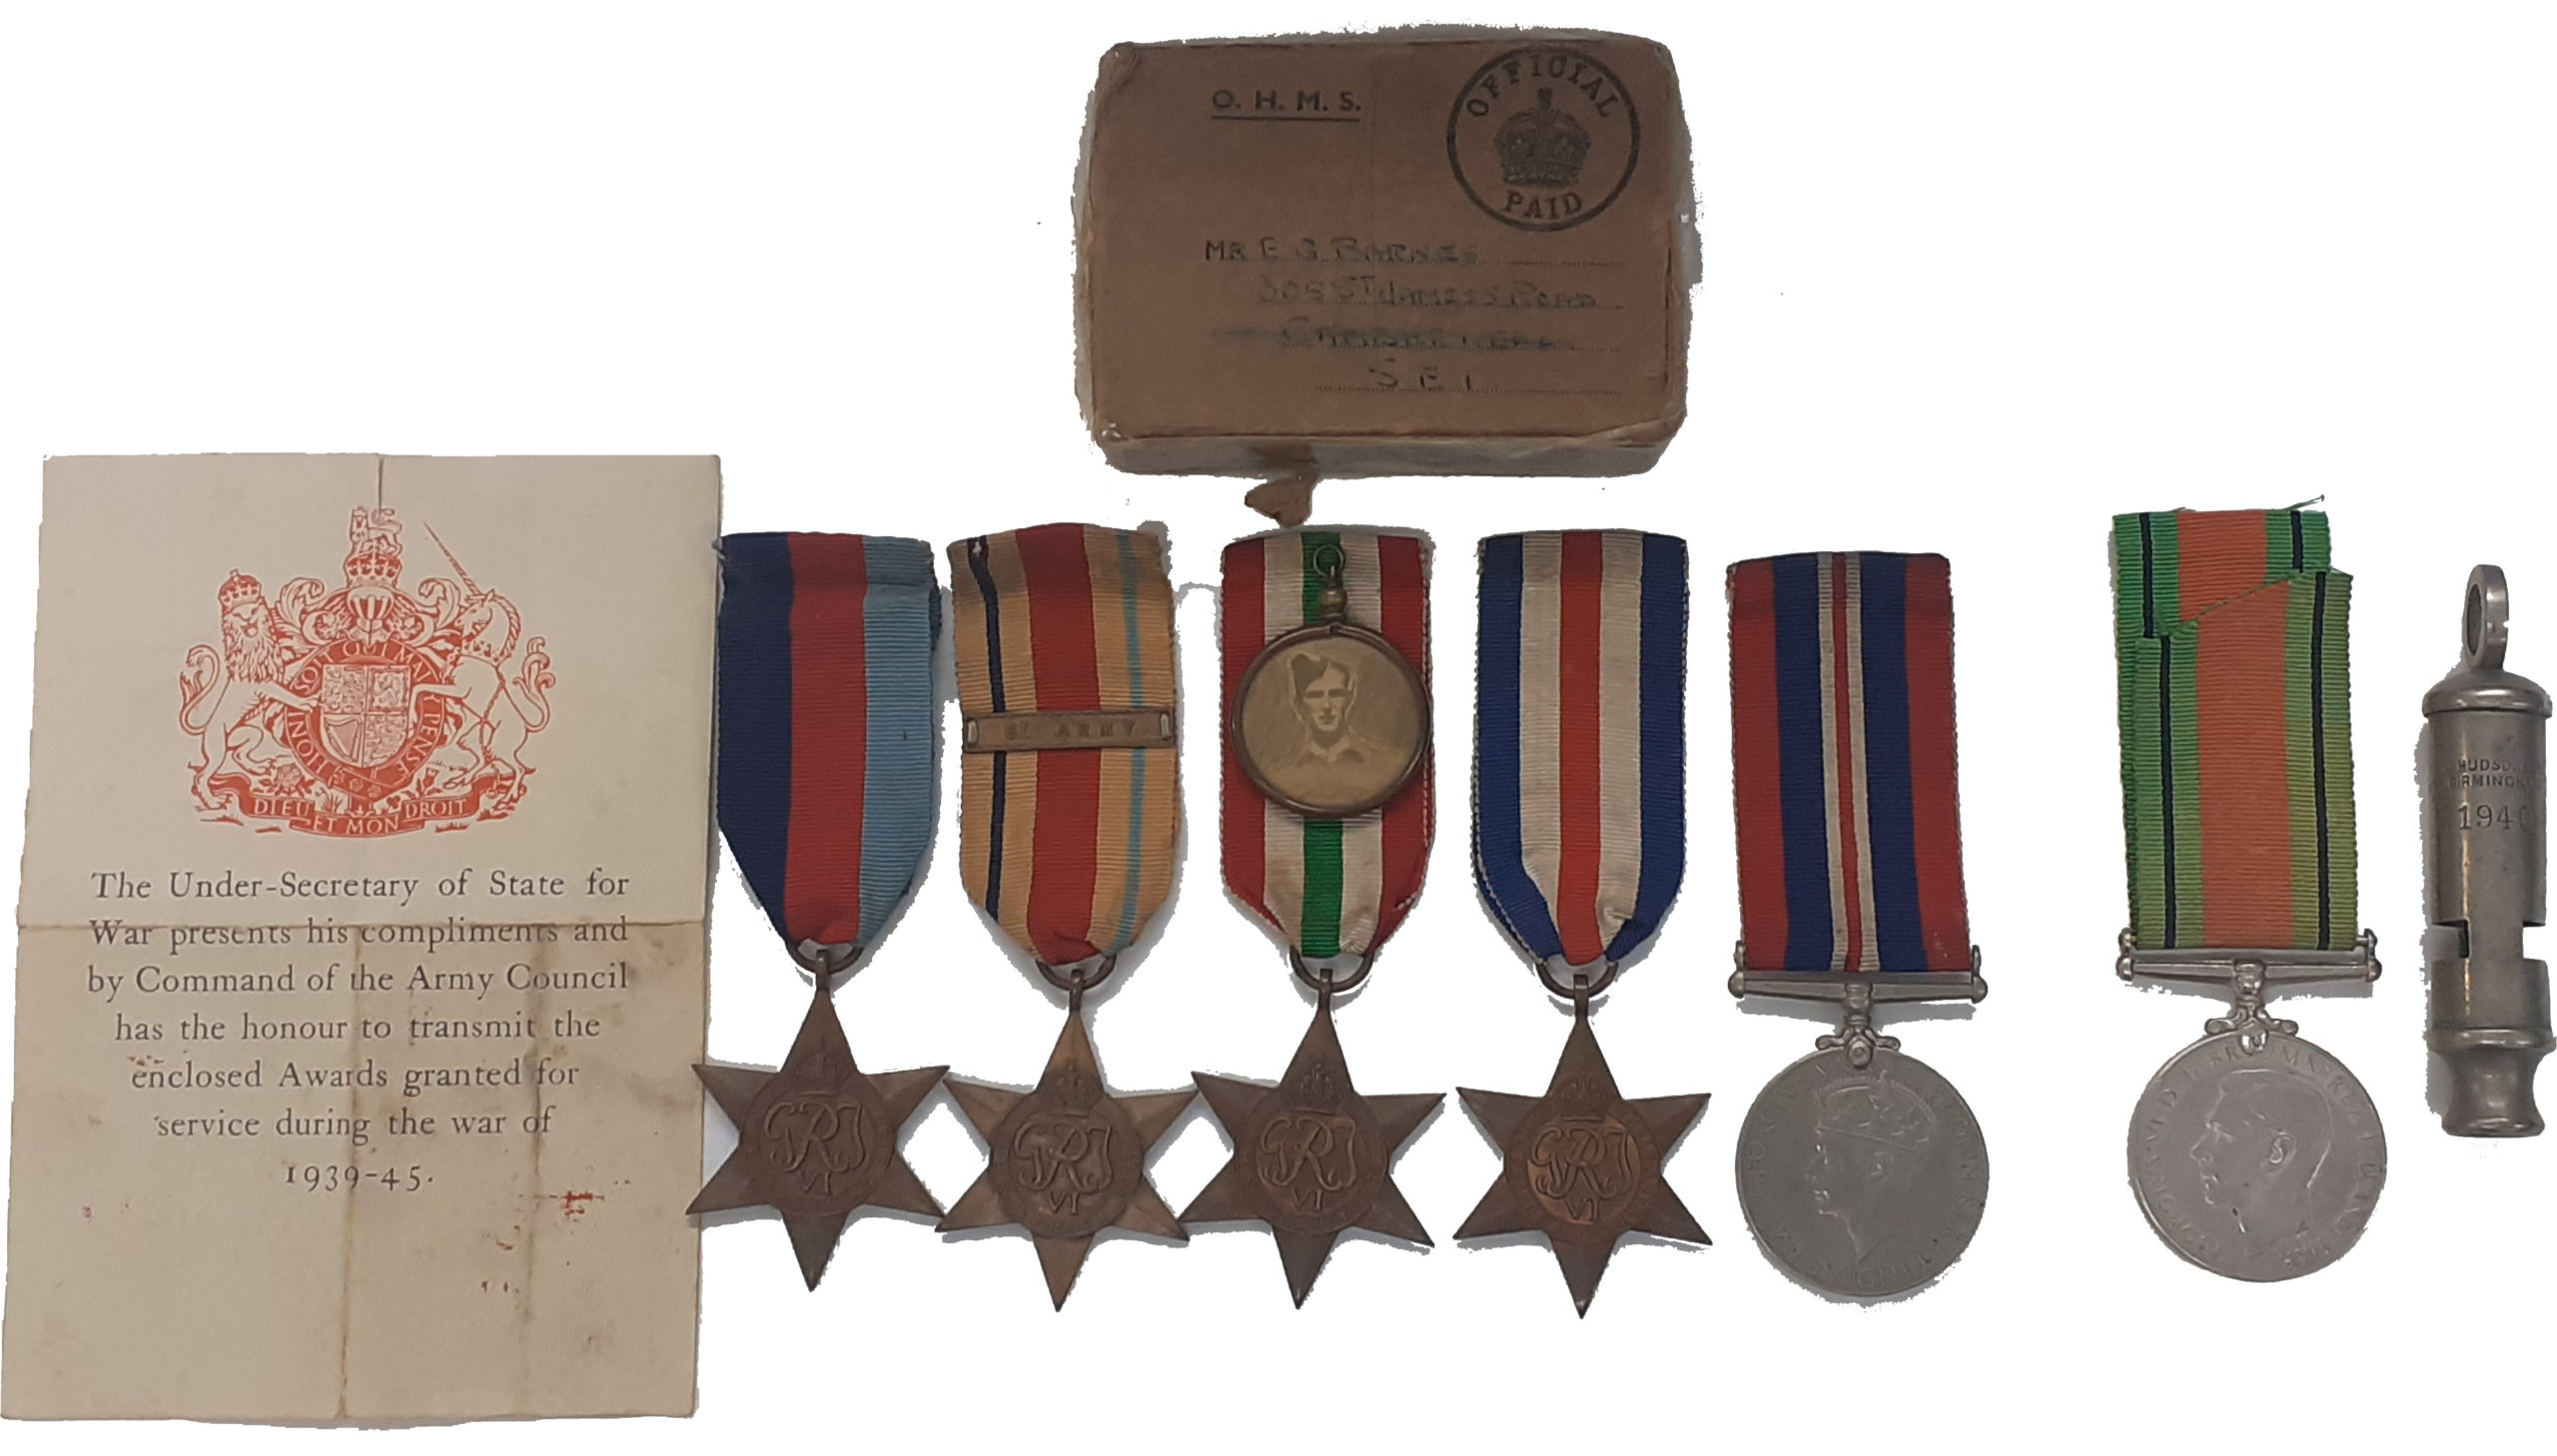 A Rifle Brigade, 8th Army, Desert Rats, 2nd Battle of El Alamein, Italy Campaign, D+2 Normandy landing's Group of 5 to Sergeant Ernest George Barnes